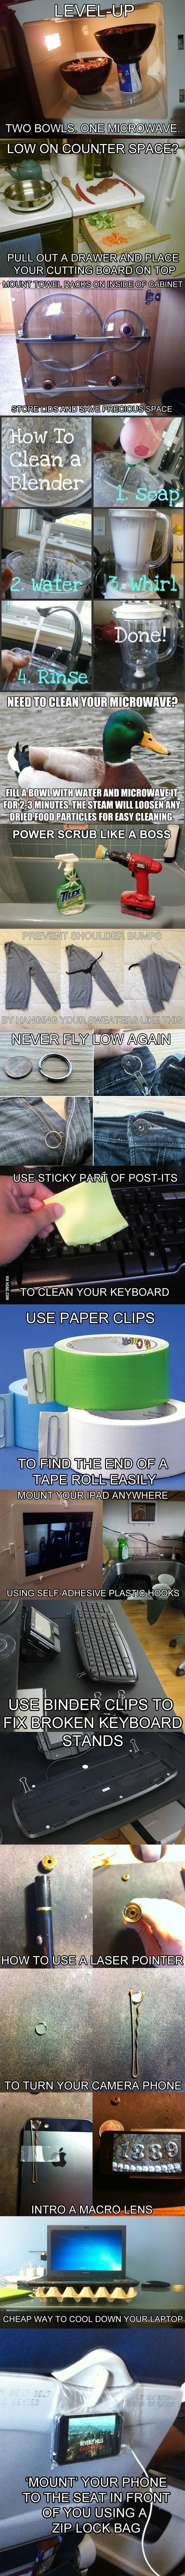 15 Clever Life Hacks to Simplify Your World--worth it for the second one alone!